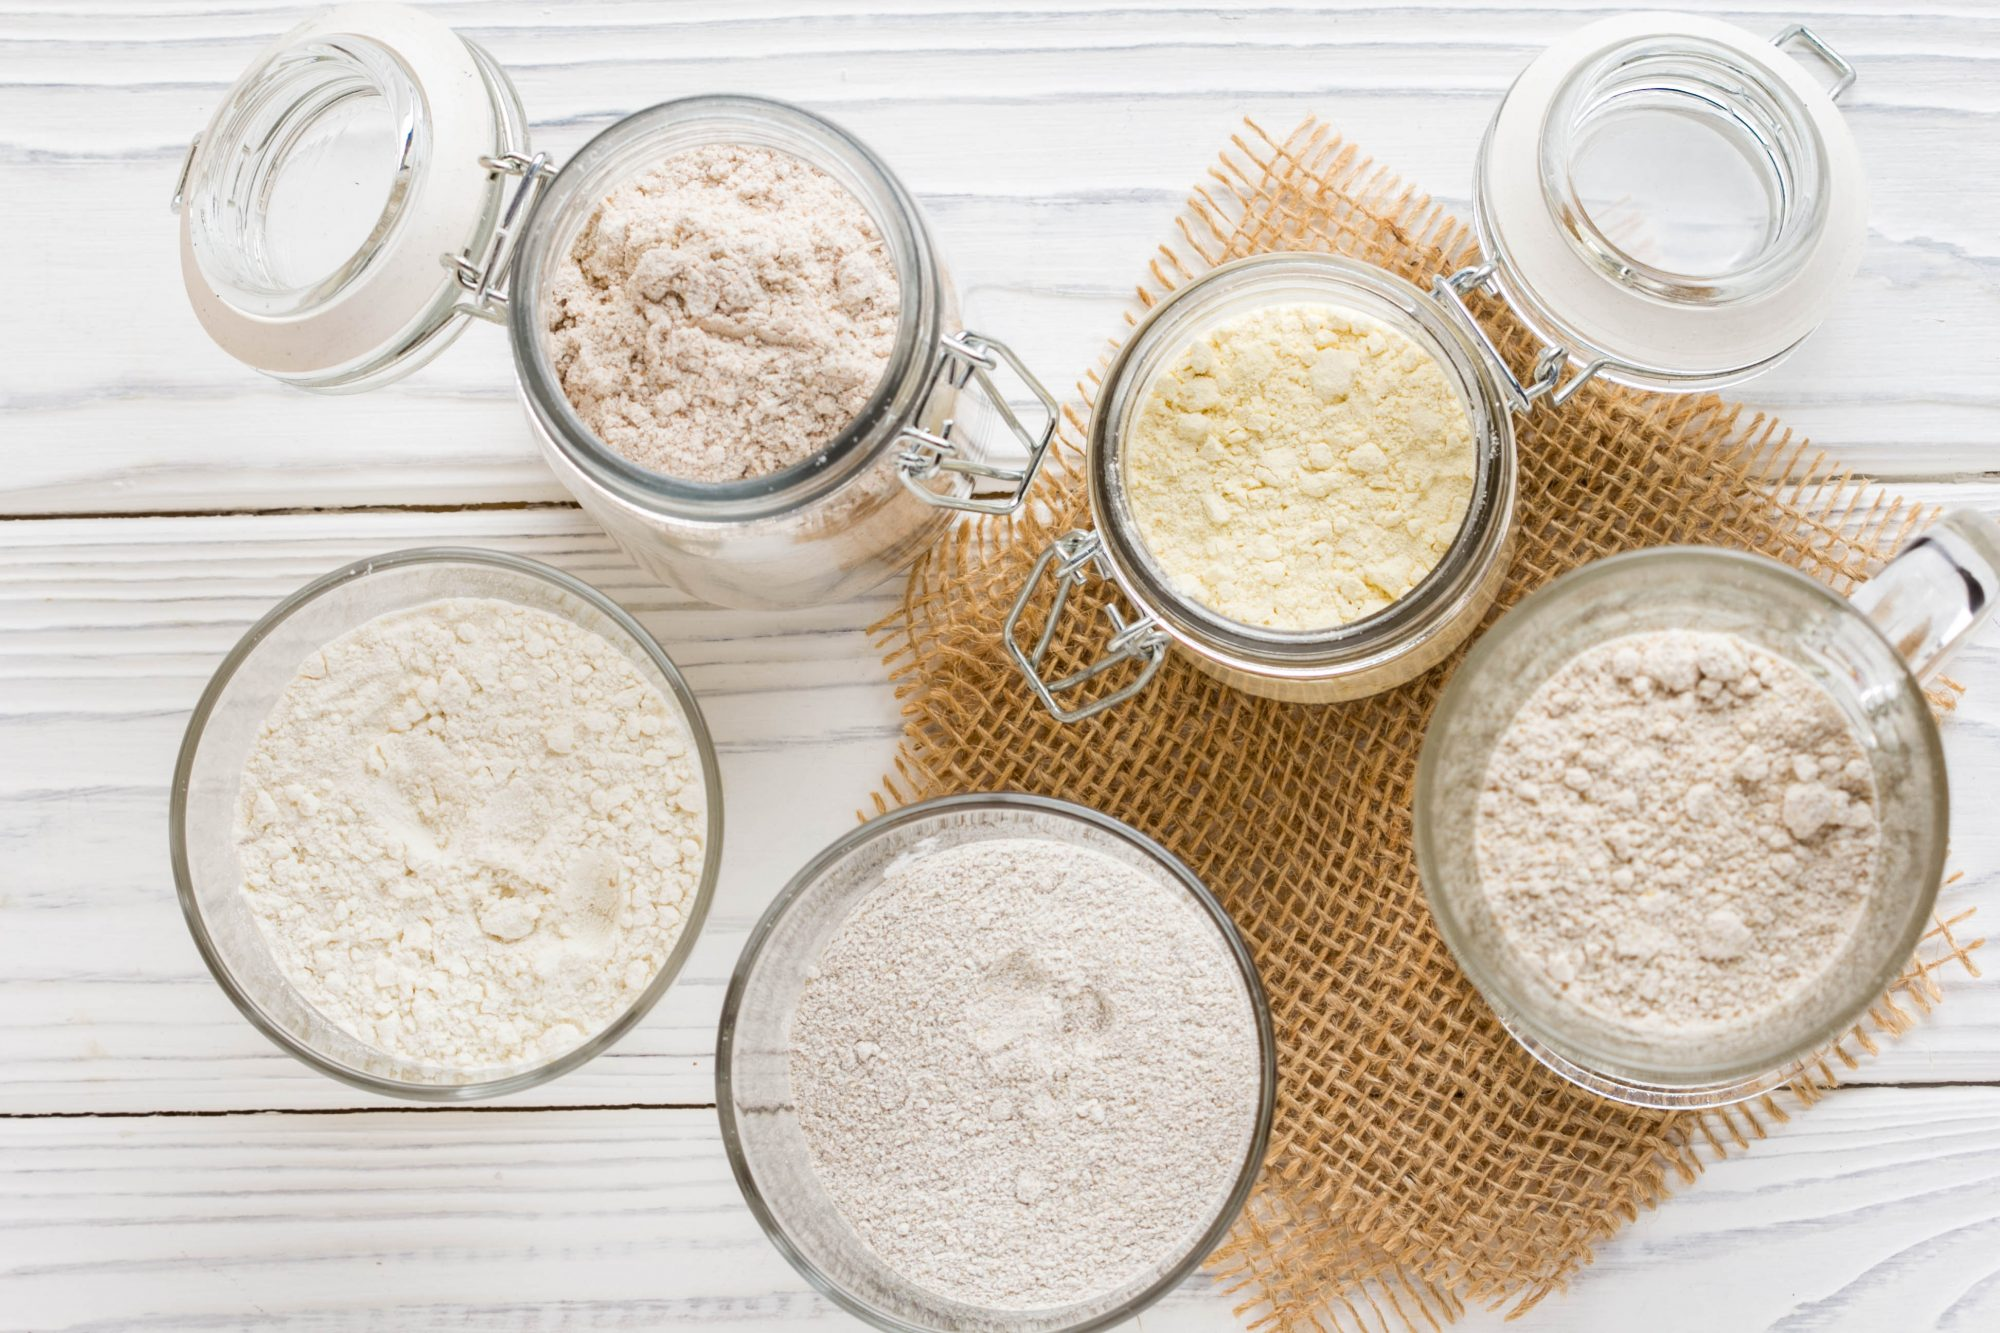 042420_Different Types of Flour image